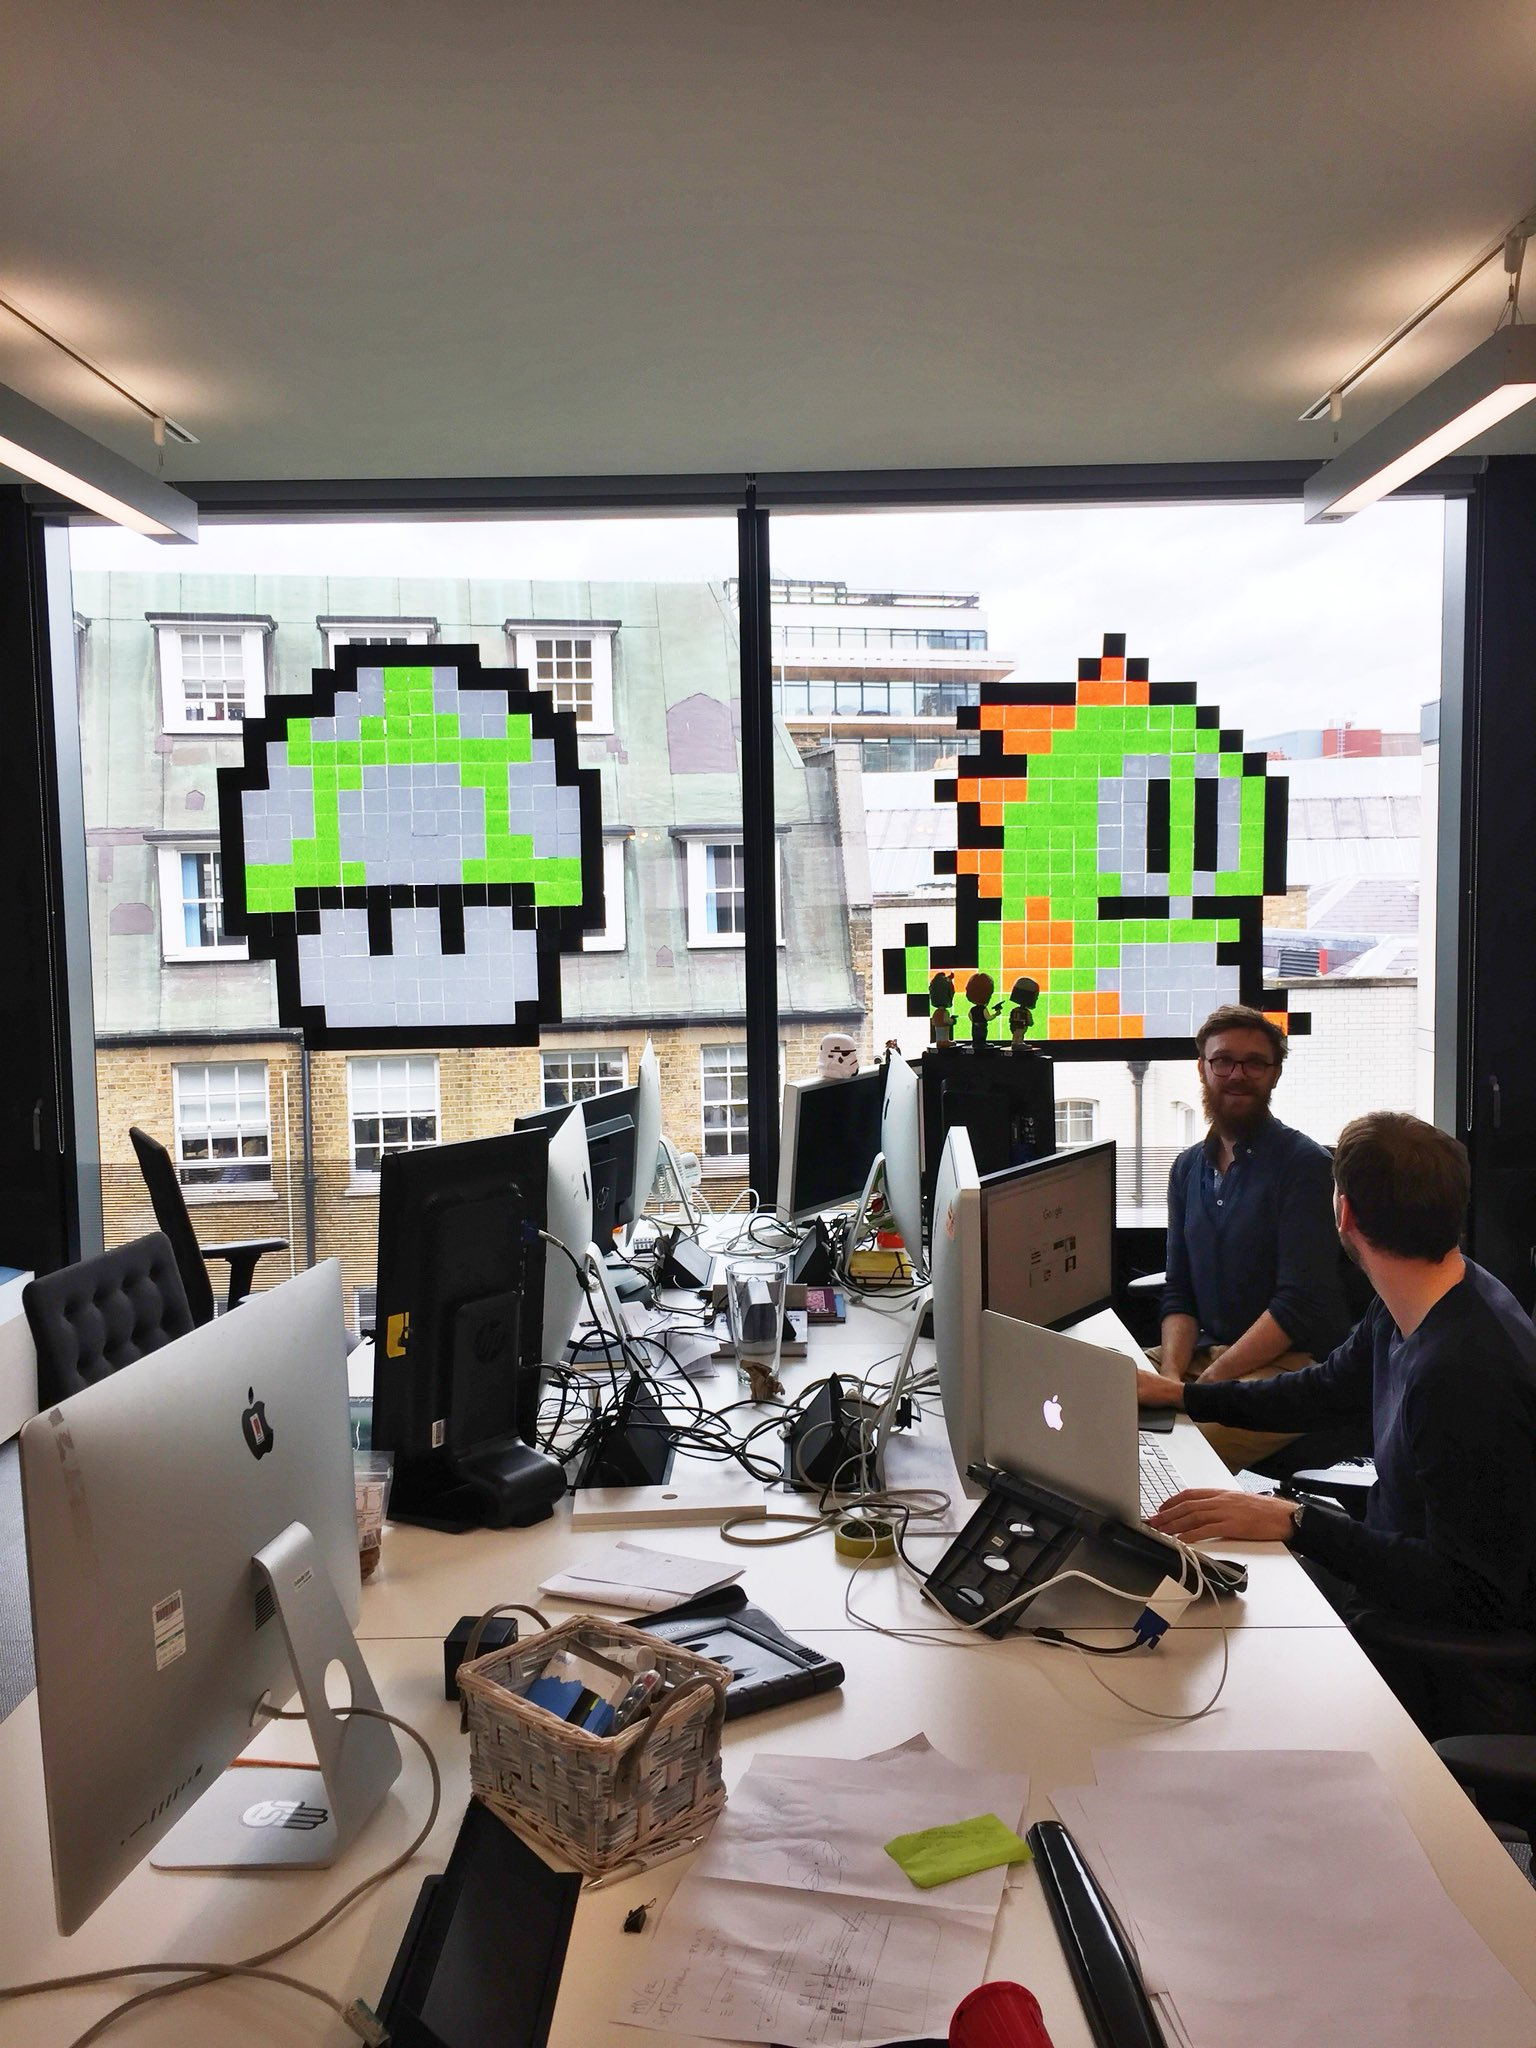 Our studio department show us the power of the post-it! #friyay https://t.co/jqhjKGVDl7